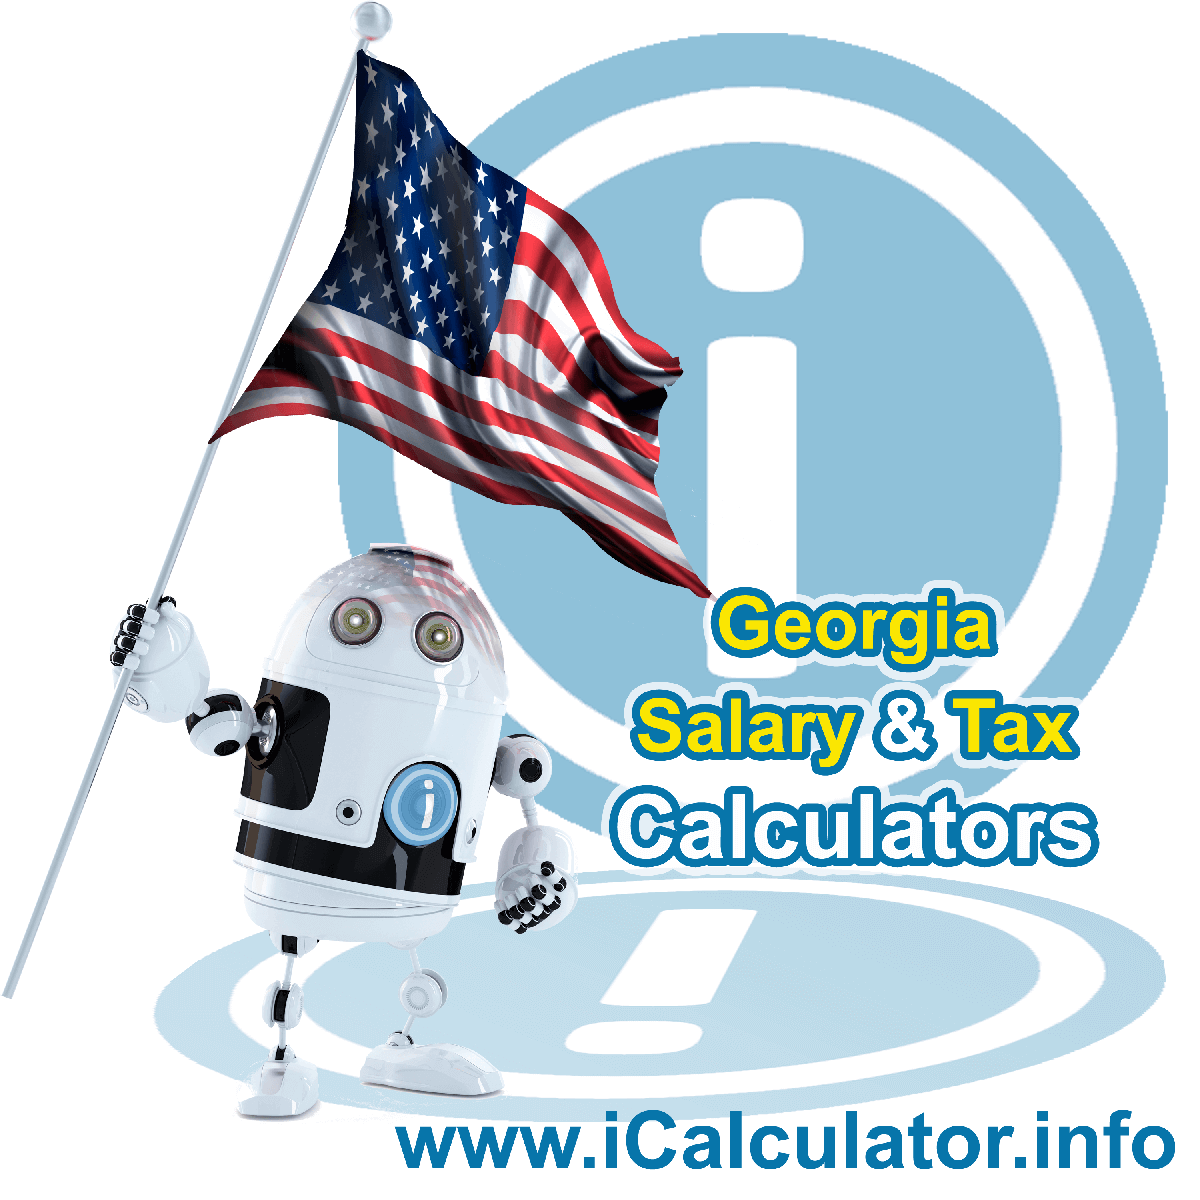 Georgia Salary Calculator 2019 | iCalculator | The Georgia Salary Calculator allows you to quickly calculate your salary after tax including Georgia State Tax, Federal State Tax, Medicare Deductions, Social Security, Capital Gains and other income tax and salary deductions complete with supporting Georgia state tax tables